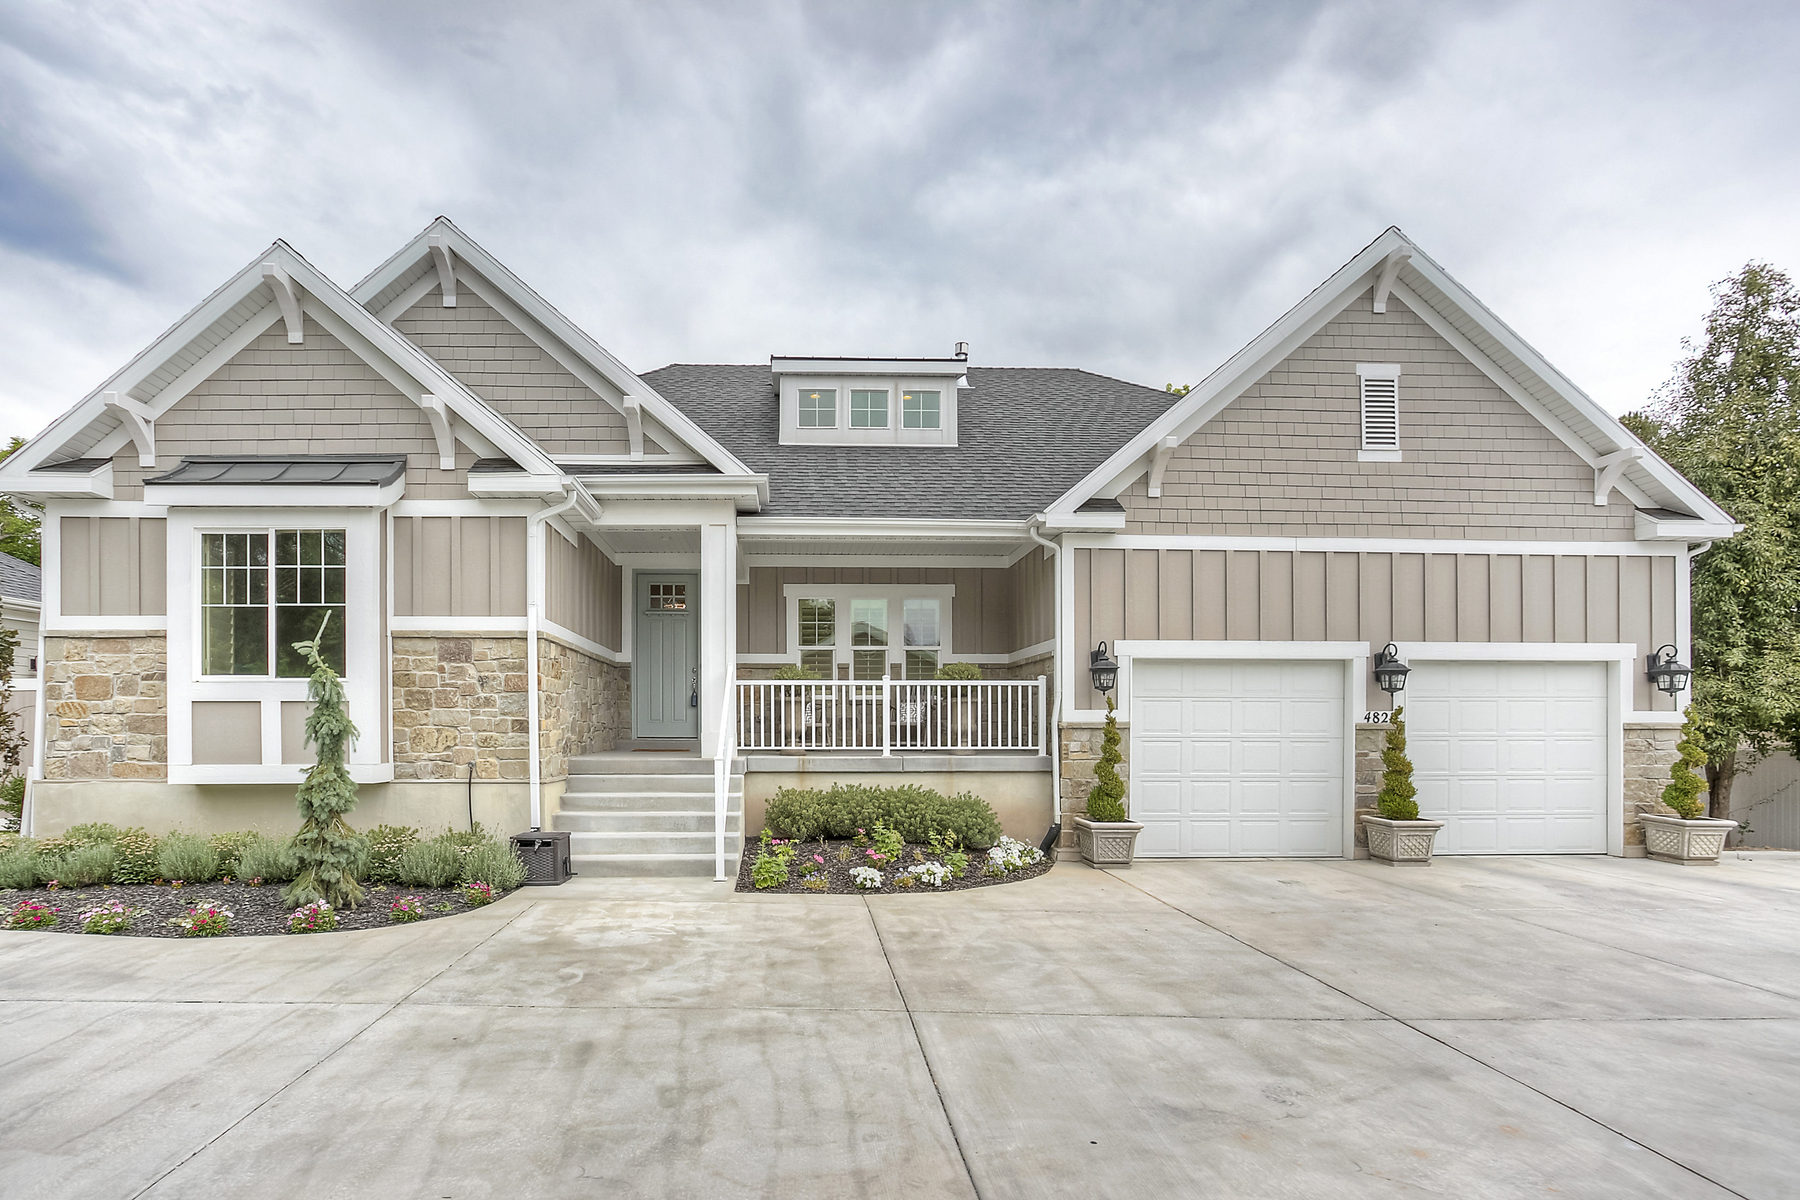 Property For Sale at Gorgeous Holladay Home